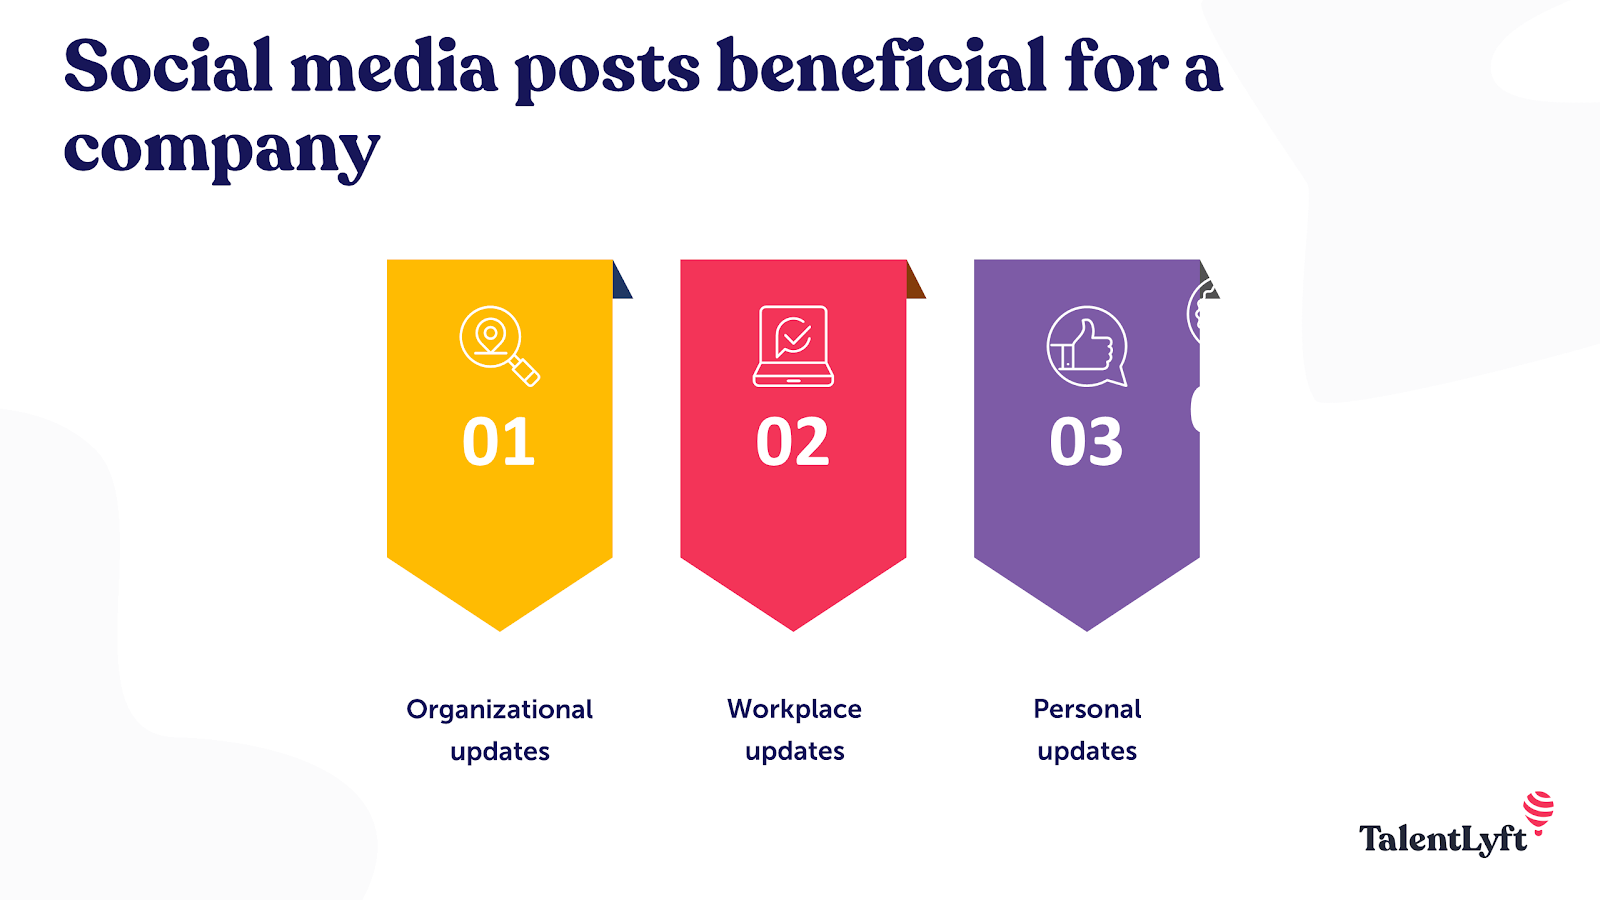 Social media posts by employees: What to post?